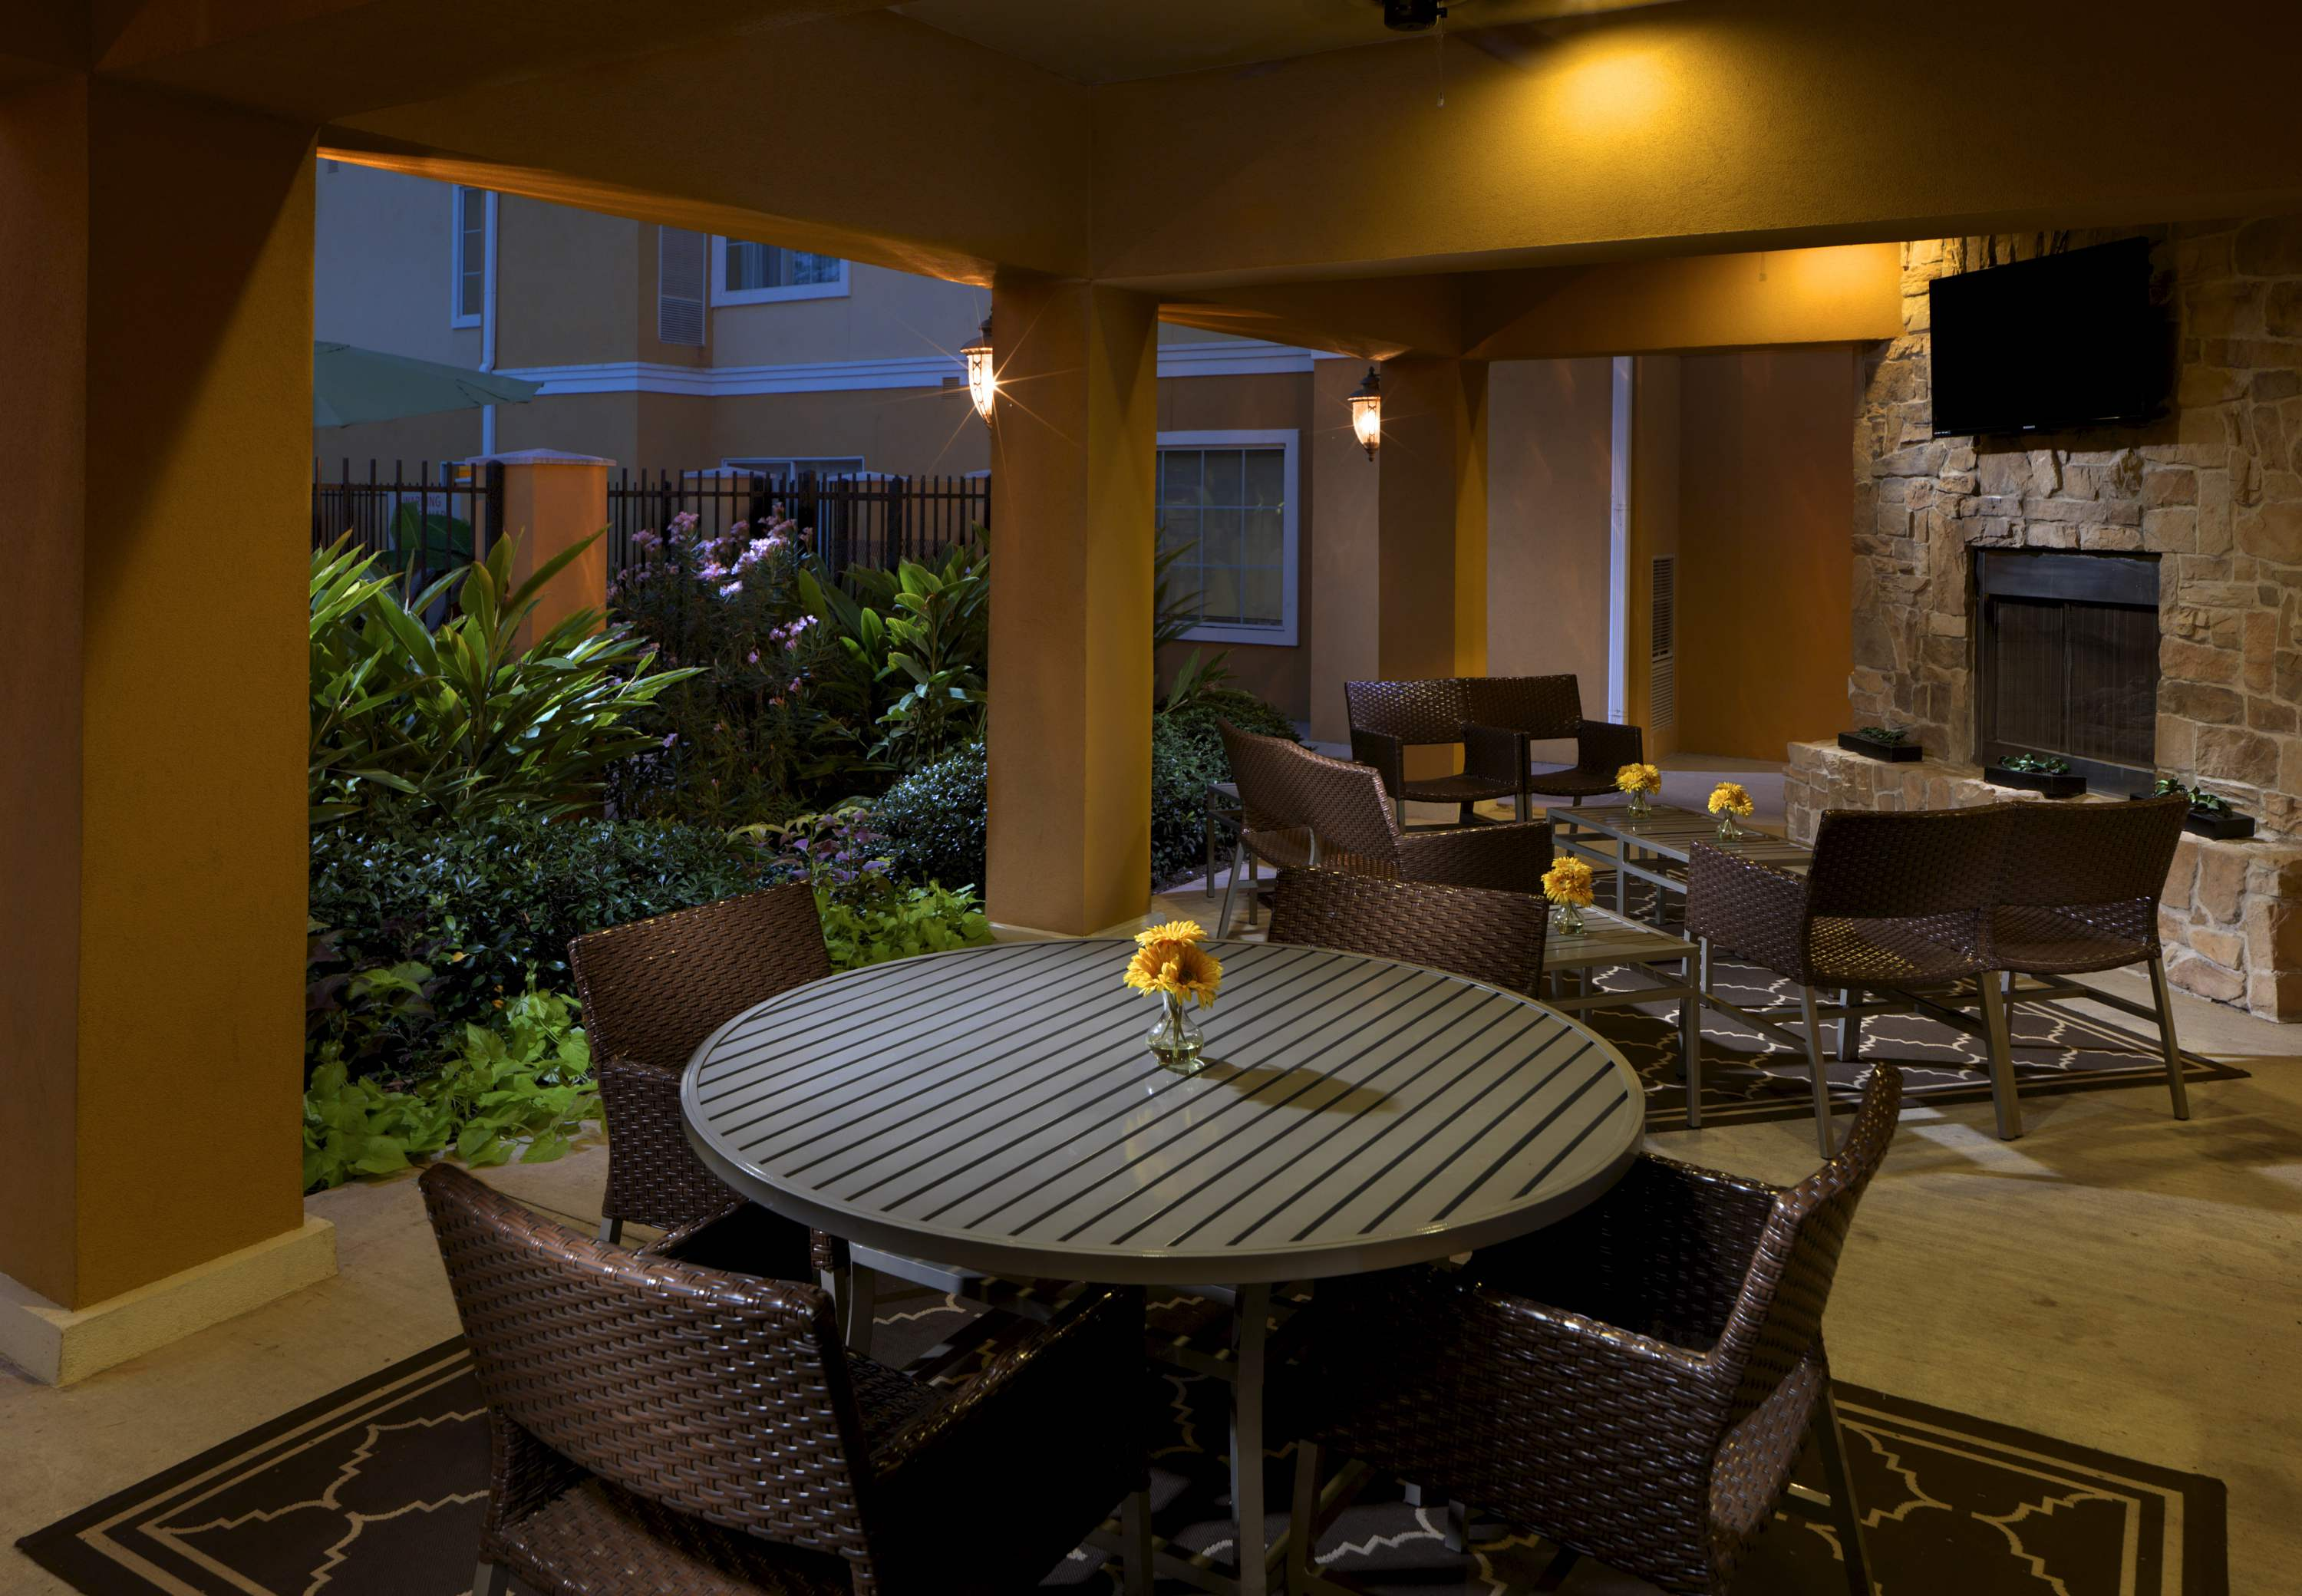 TownePlace Suites by Marriott Houston North/Shenandoah image 8